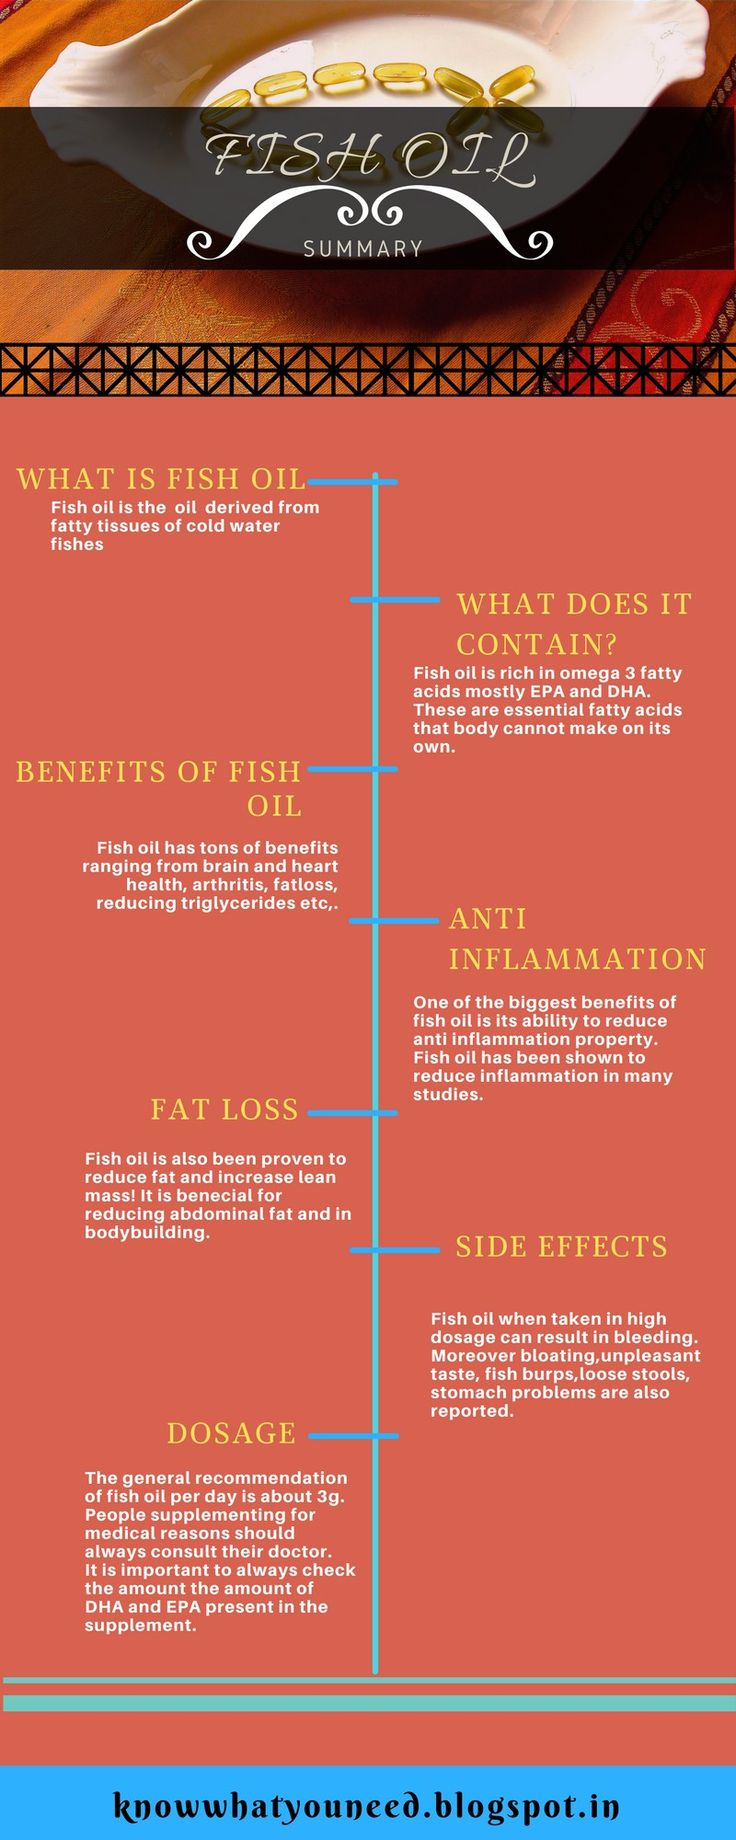 FISH OIL has amazing benefits ranging from heart health to weight loss. Click to know more about benefits side effects and dosage